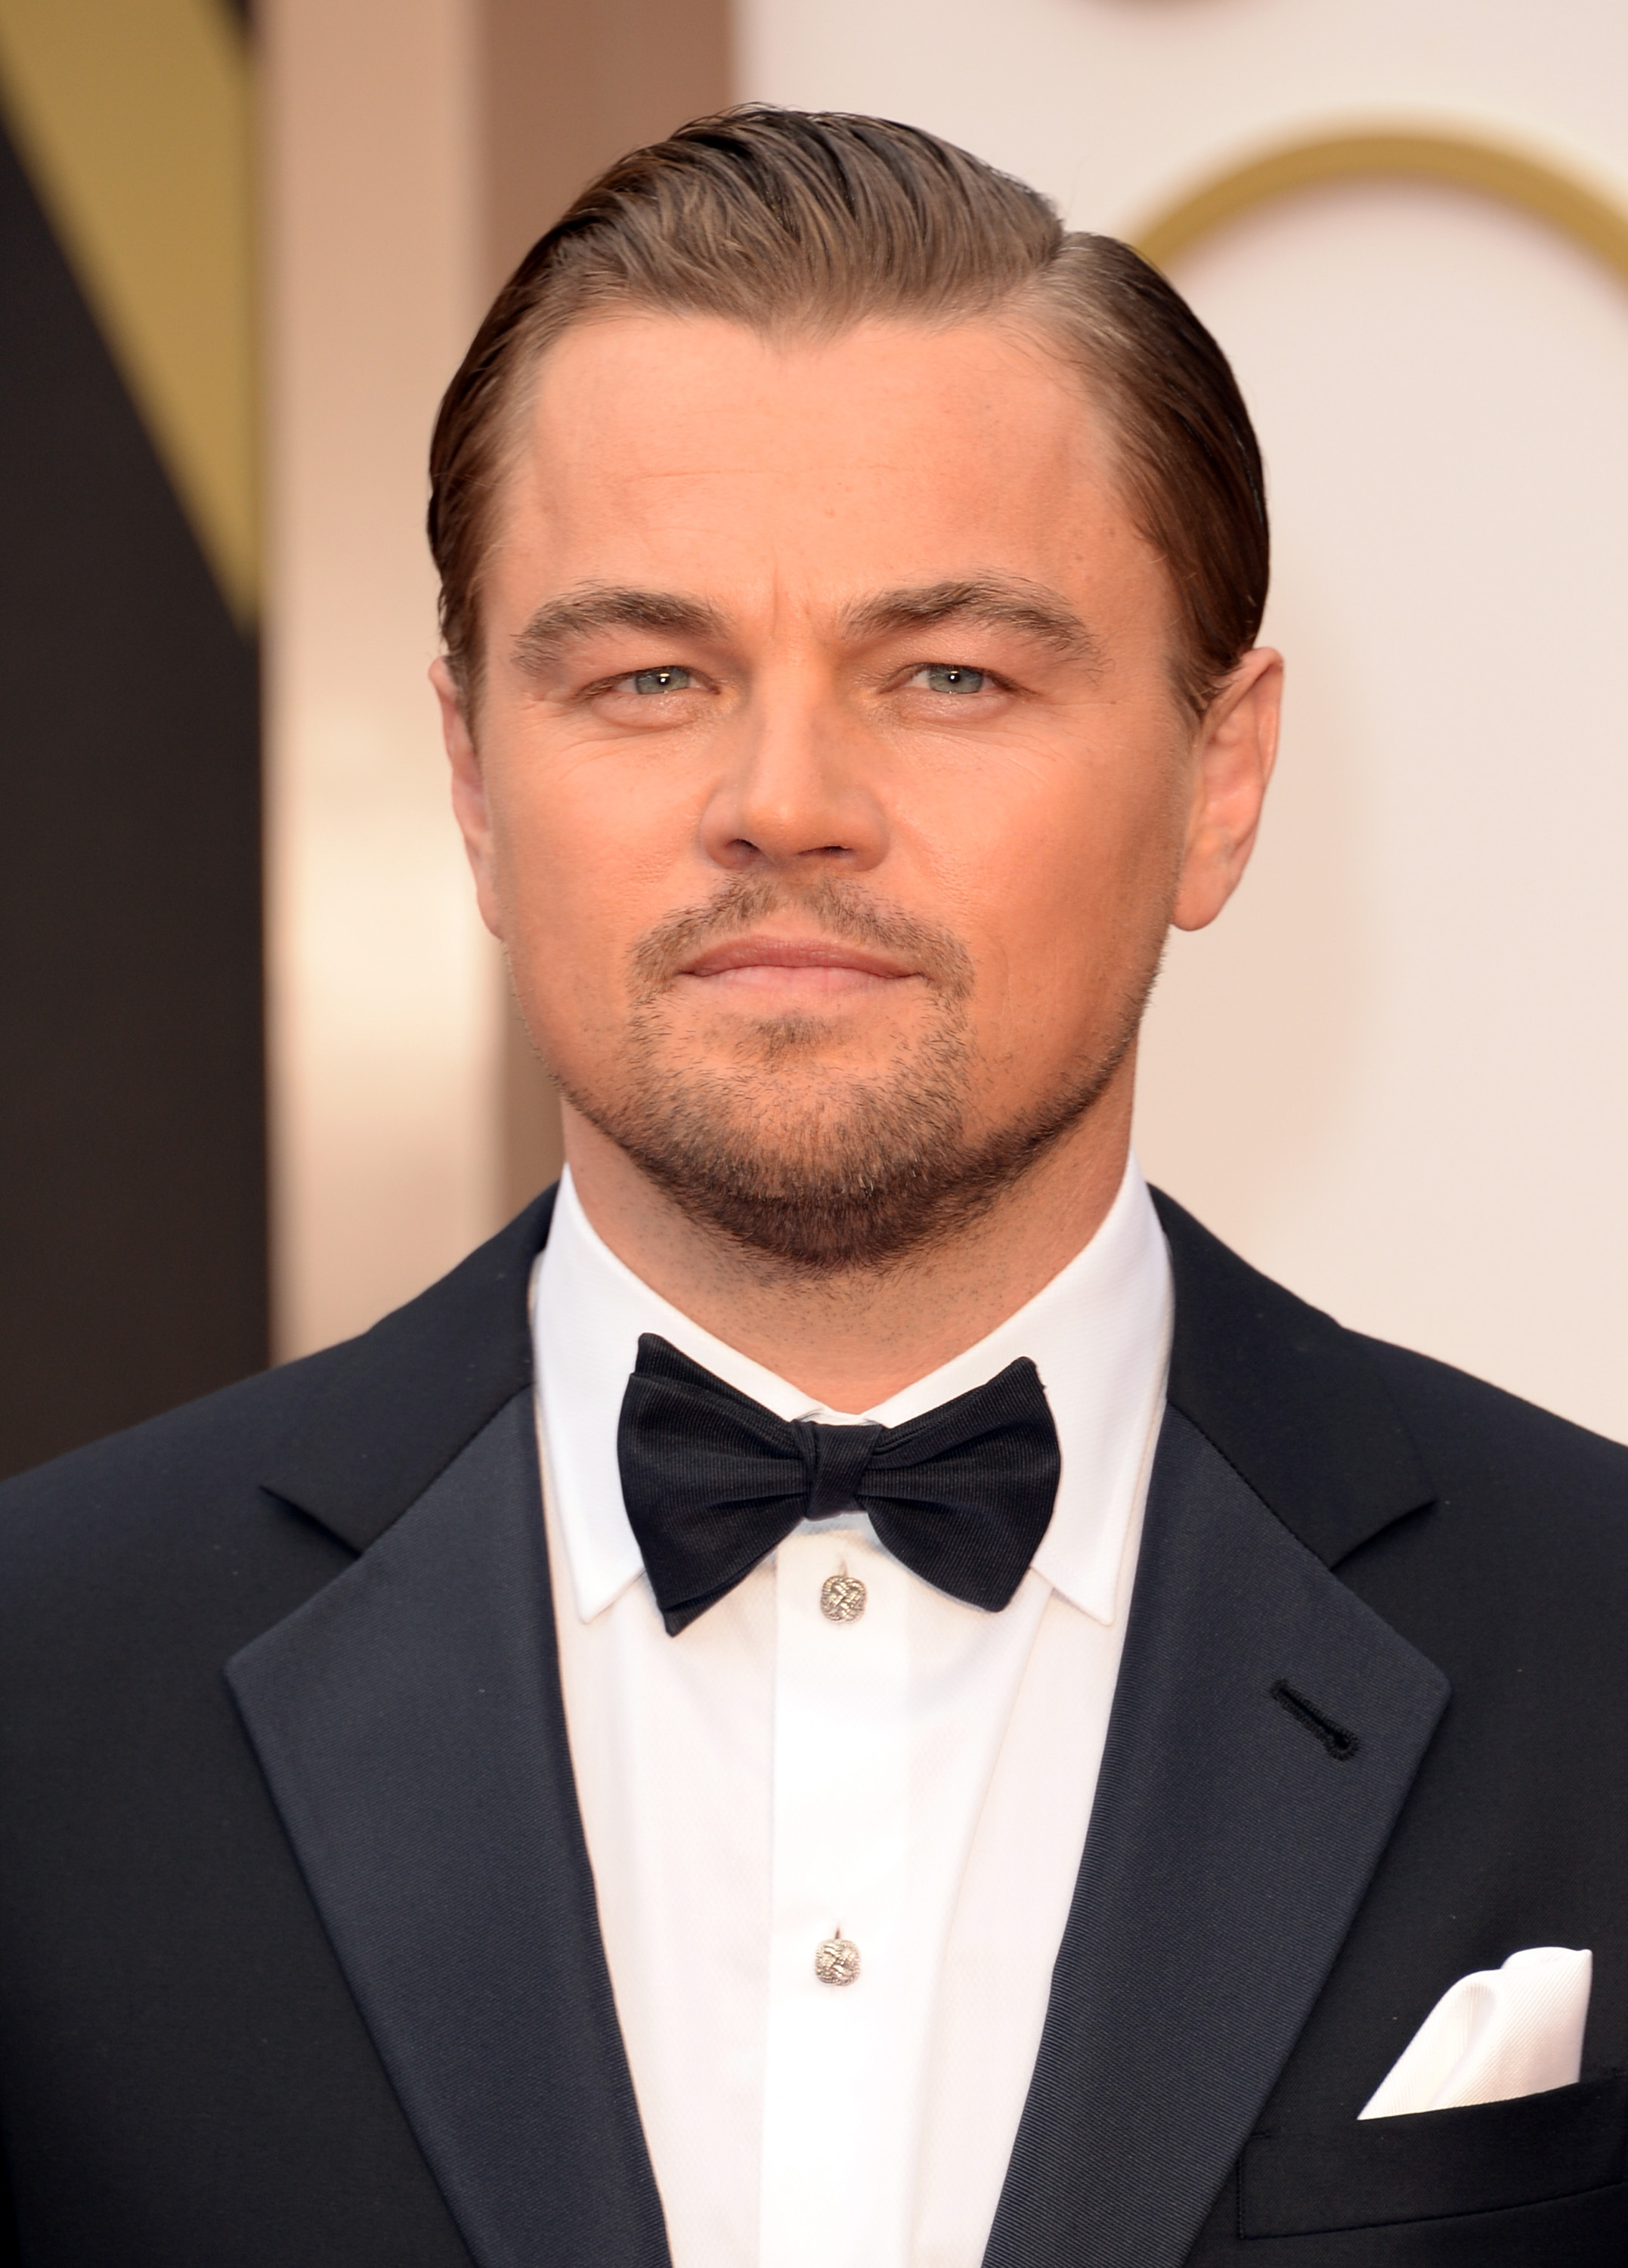 Leonardo DiCaprio in Formal Attire